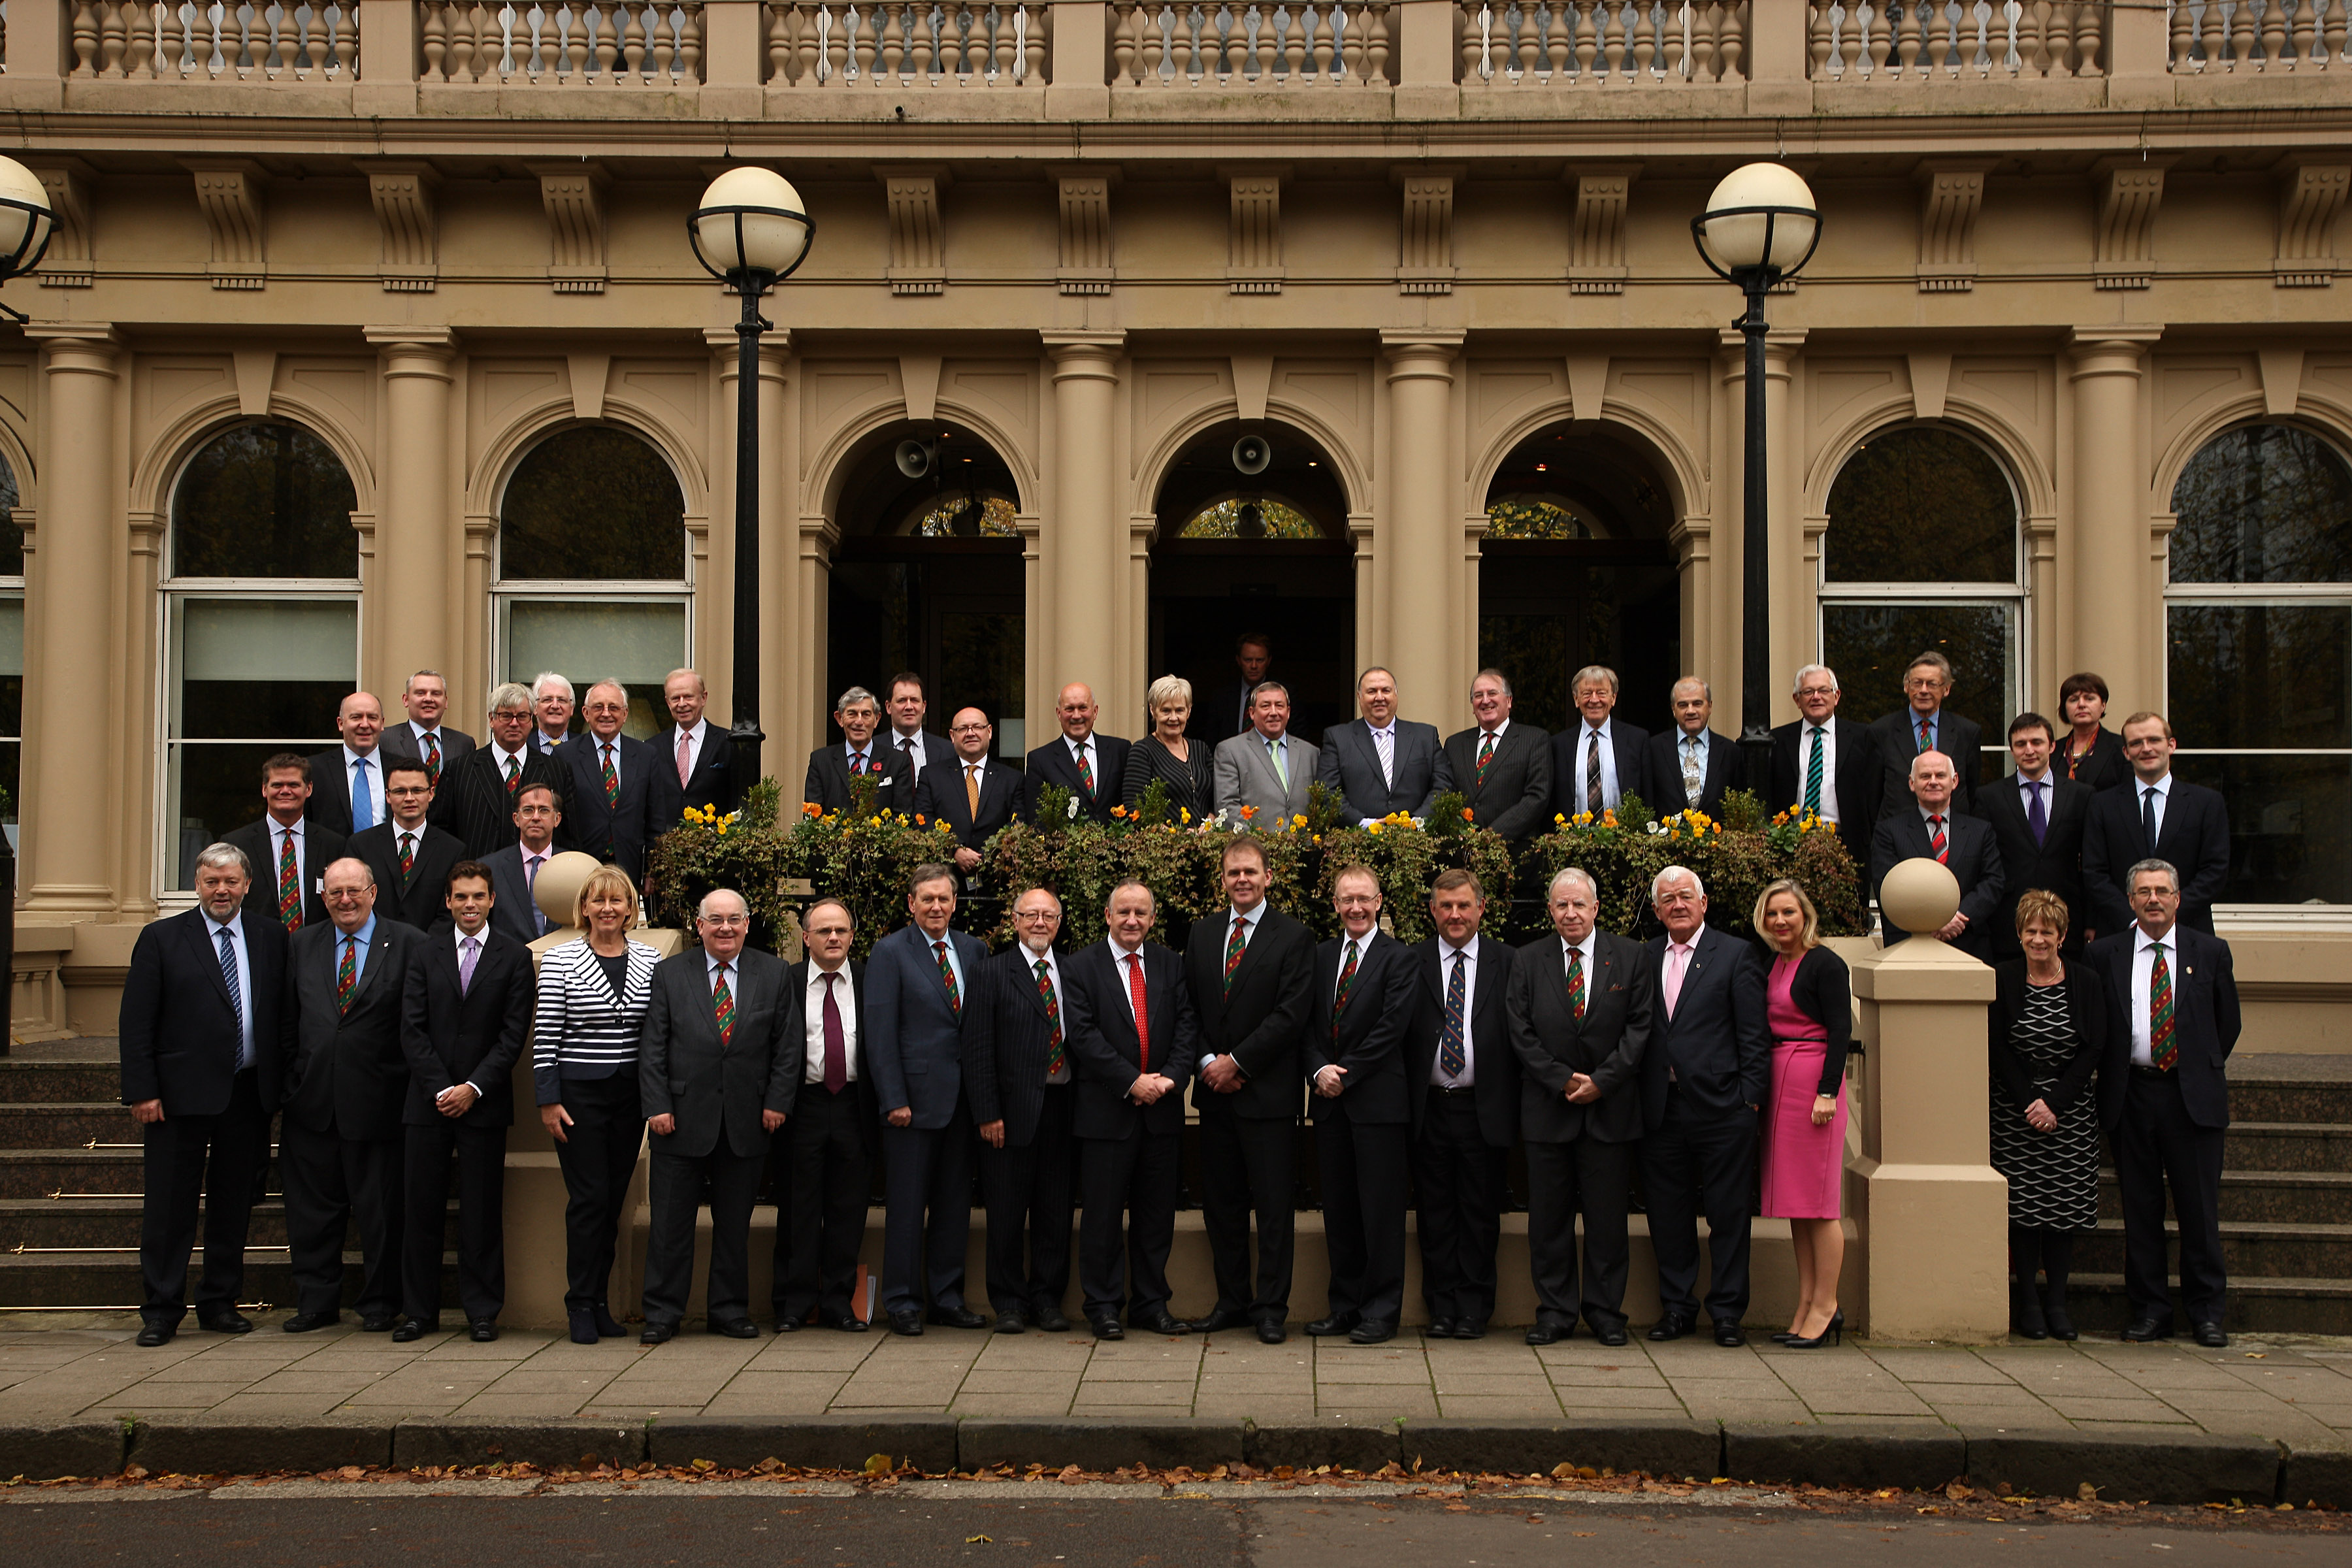 Delegates to the 45th plenary of the British Irish Parliamentary Assembly, Glasgow, 22-23 October 2012